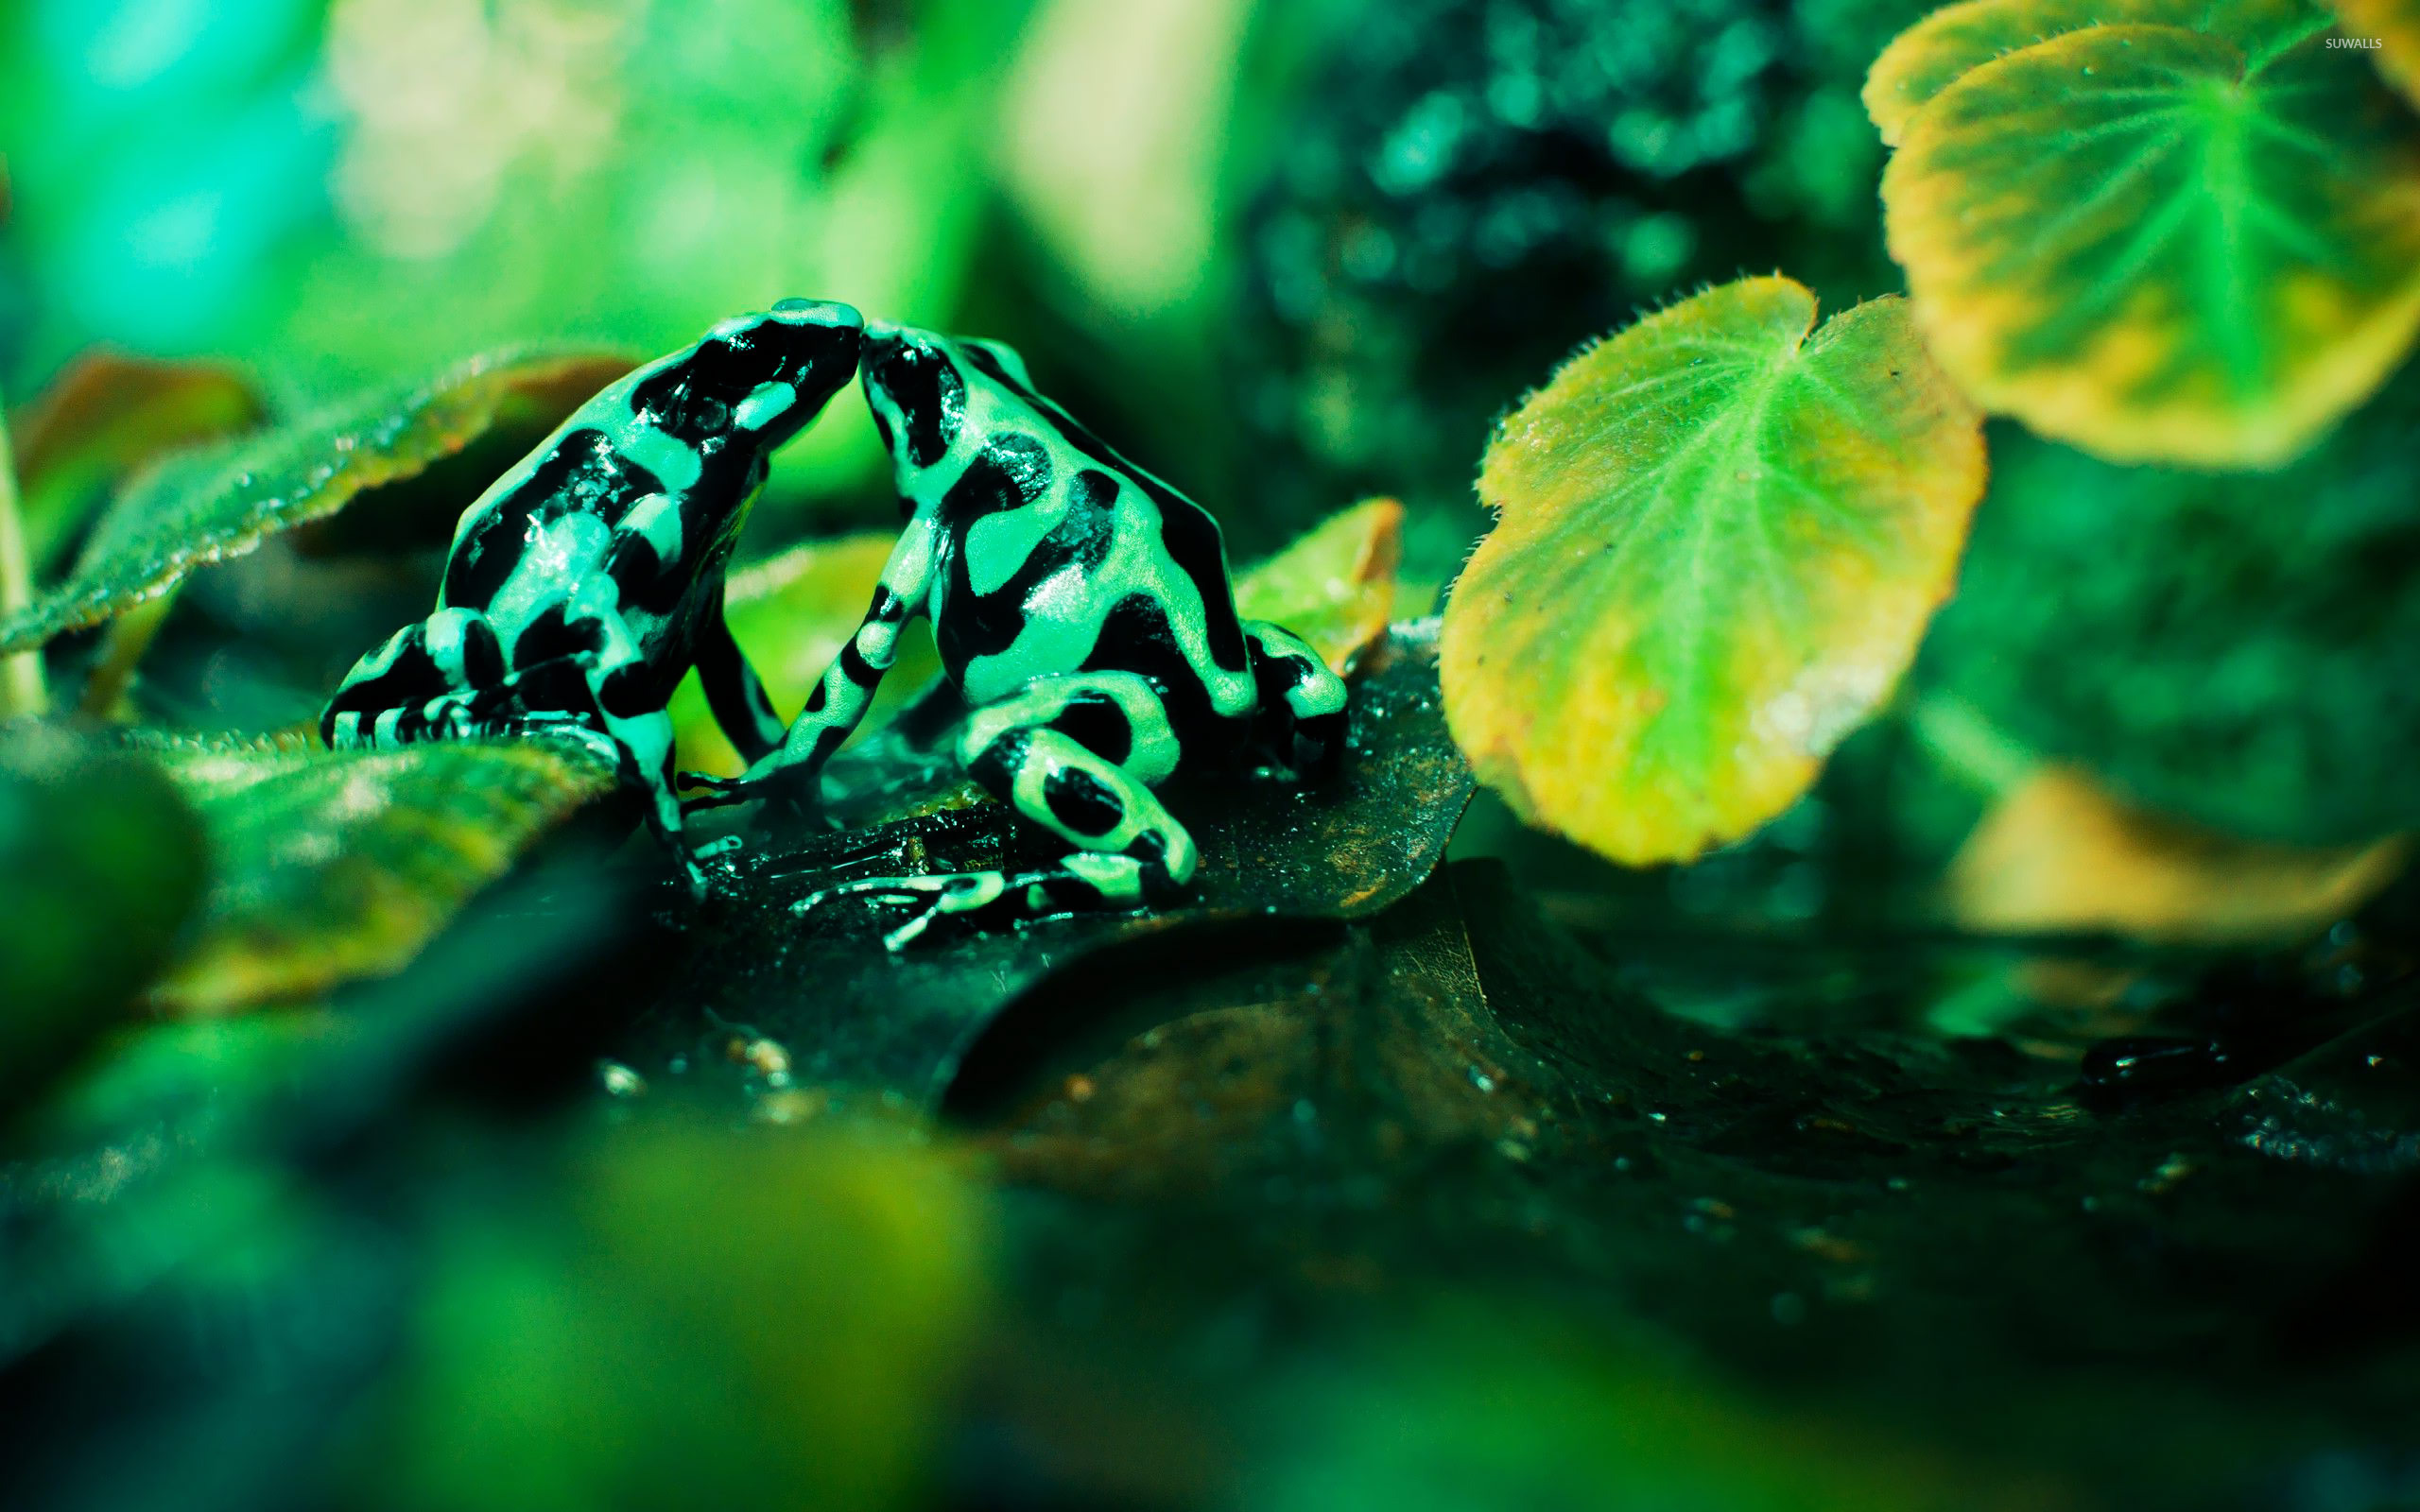 Funny Frog Wallpaper Quotes And Pictures Poison Dart Frogs Kissing Wallpaper Animal Wallpapers